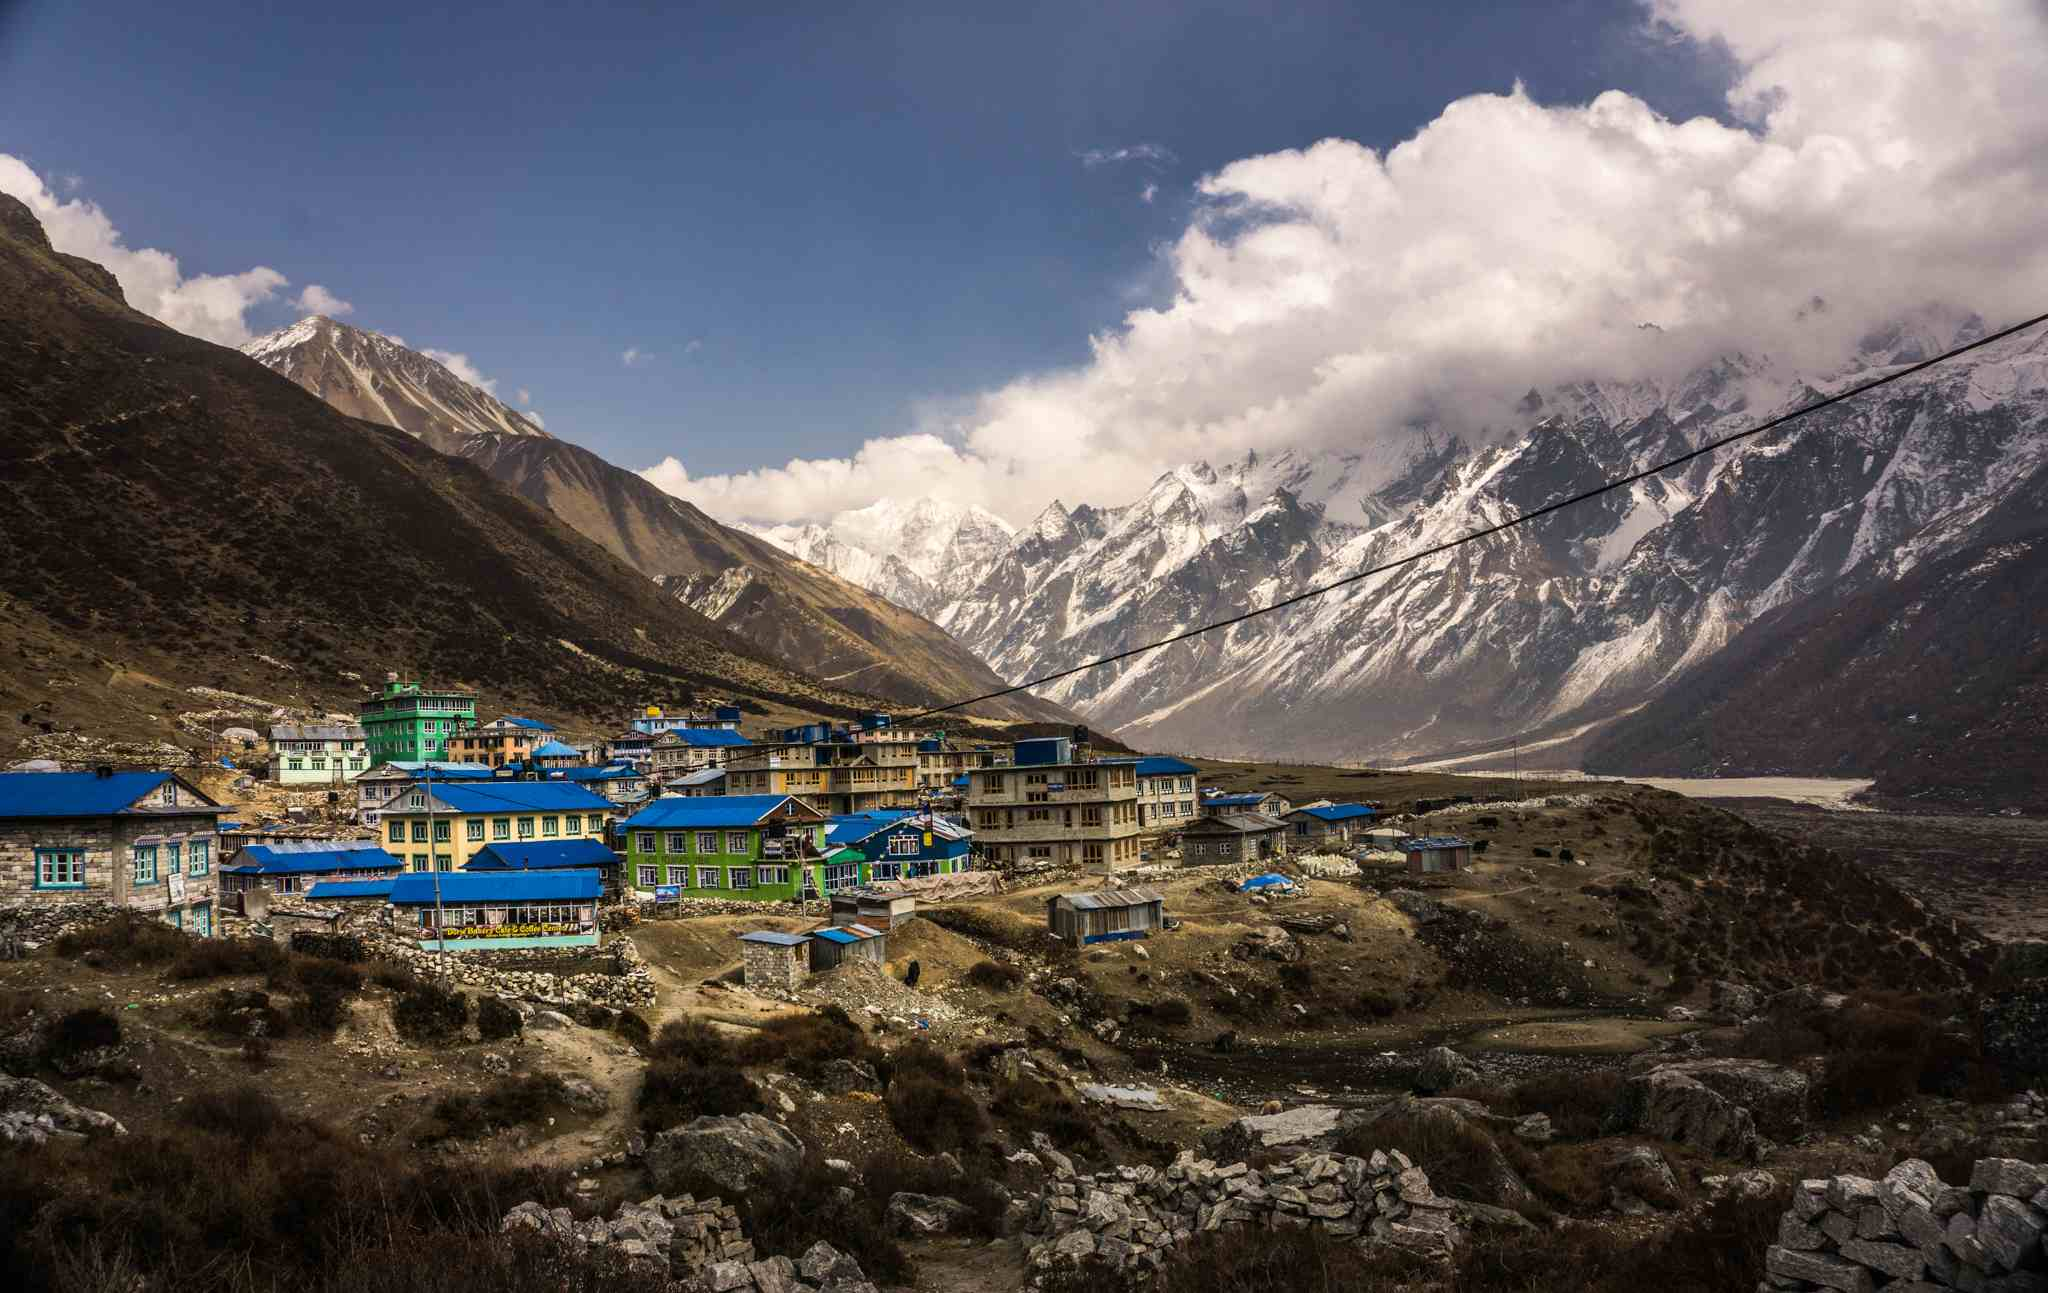 8 Reasons to Go on the Langtang Valley Trek